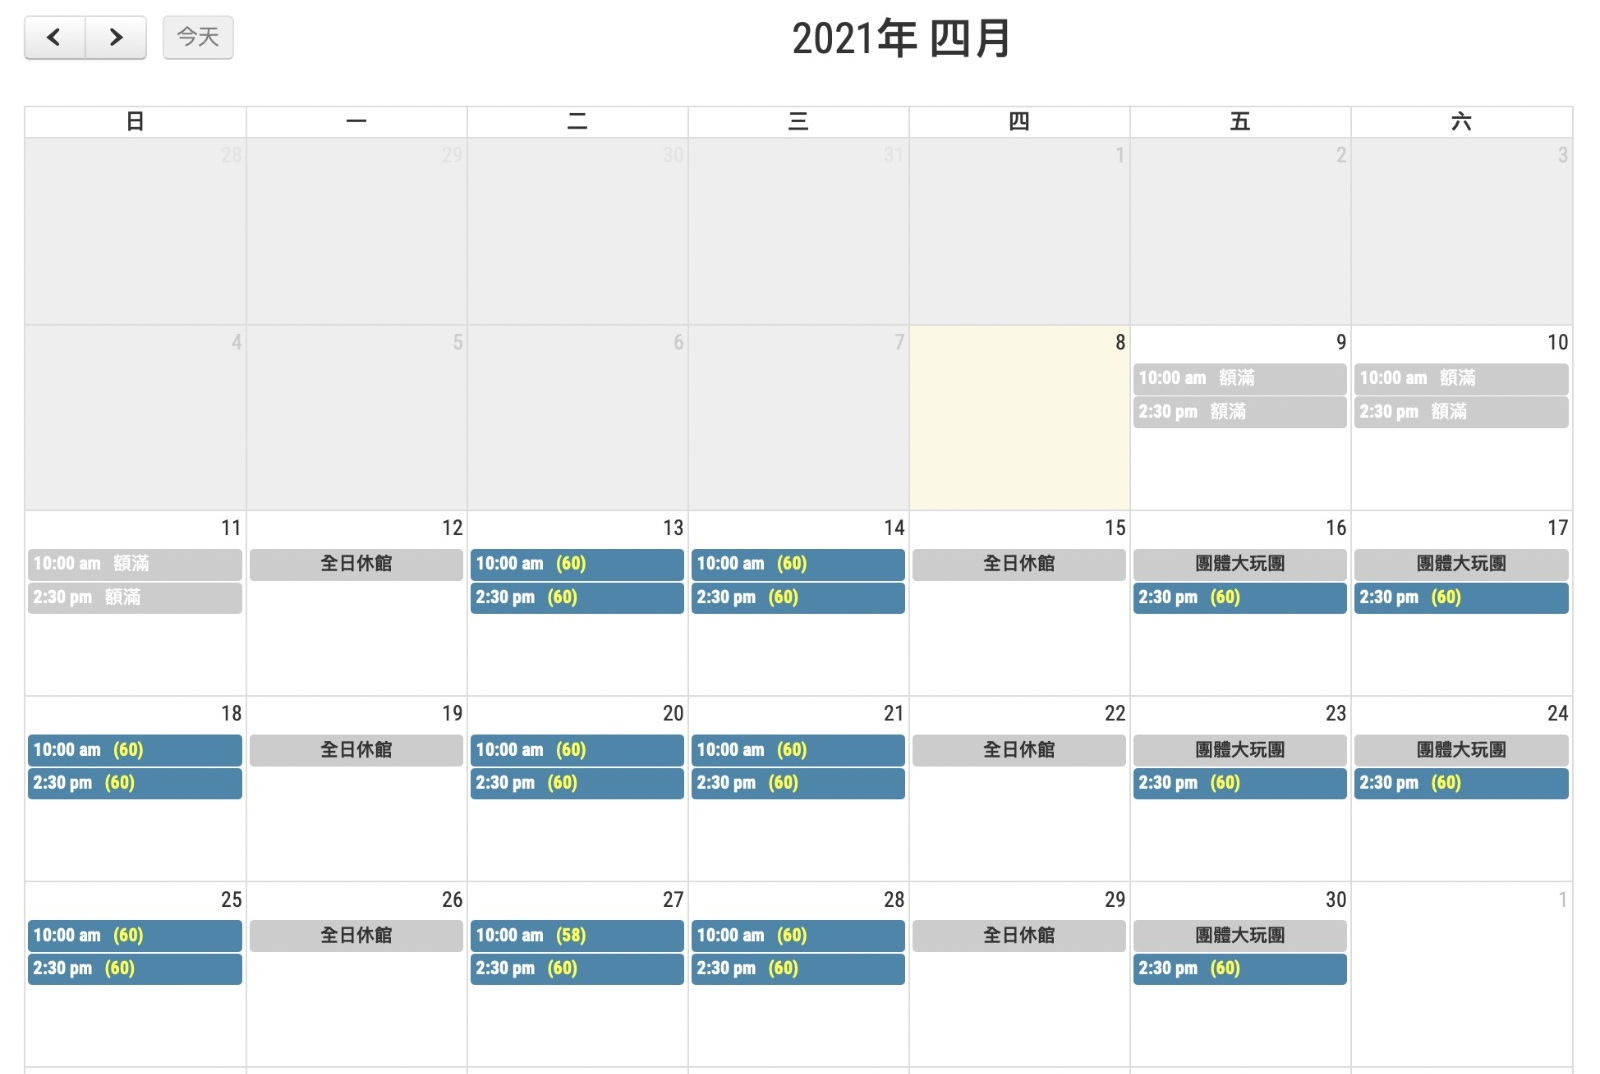 May be an image of text that says '今天 日 28 29 2021年 四月 30 三 四 10:00 2:30 (50) 10:00 2:30 (50) (50) 六 10:00 10:00 2:30 (50) (50) (50) 下午休館 10:00 2:30 (50) 10:00 2:30 (50) (50) 6 10:00 2:30 (50) (50) (50) 全日休館 10:00 2:30 50) 12 10:00 2:30 全日休館 (50) 13 10:00 2:30 (50) (50) 14 15 18 16 19 17 20 21 22 23 26 28 30'